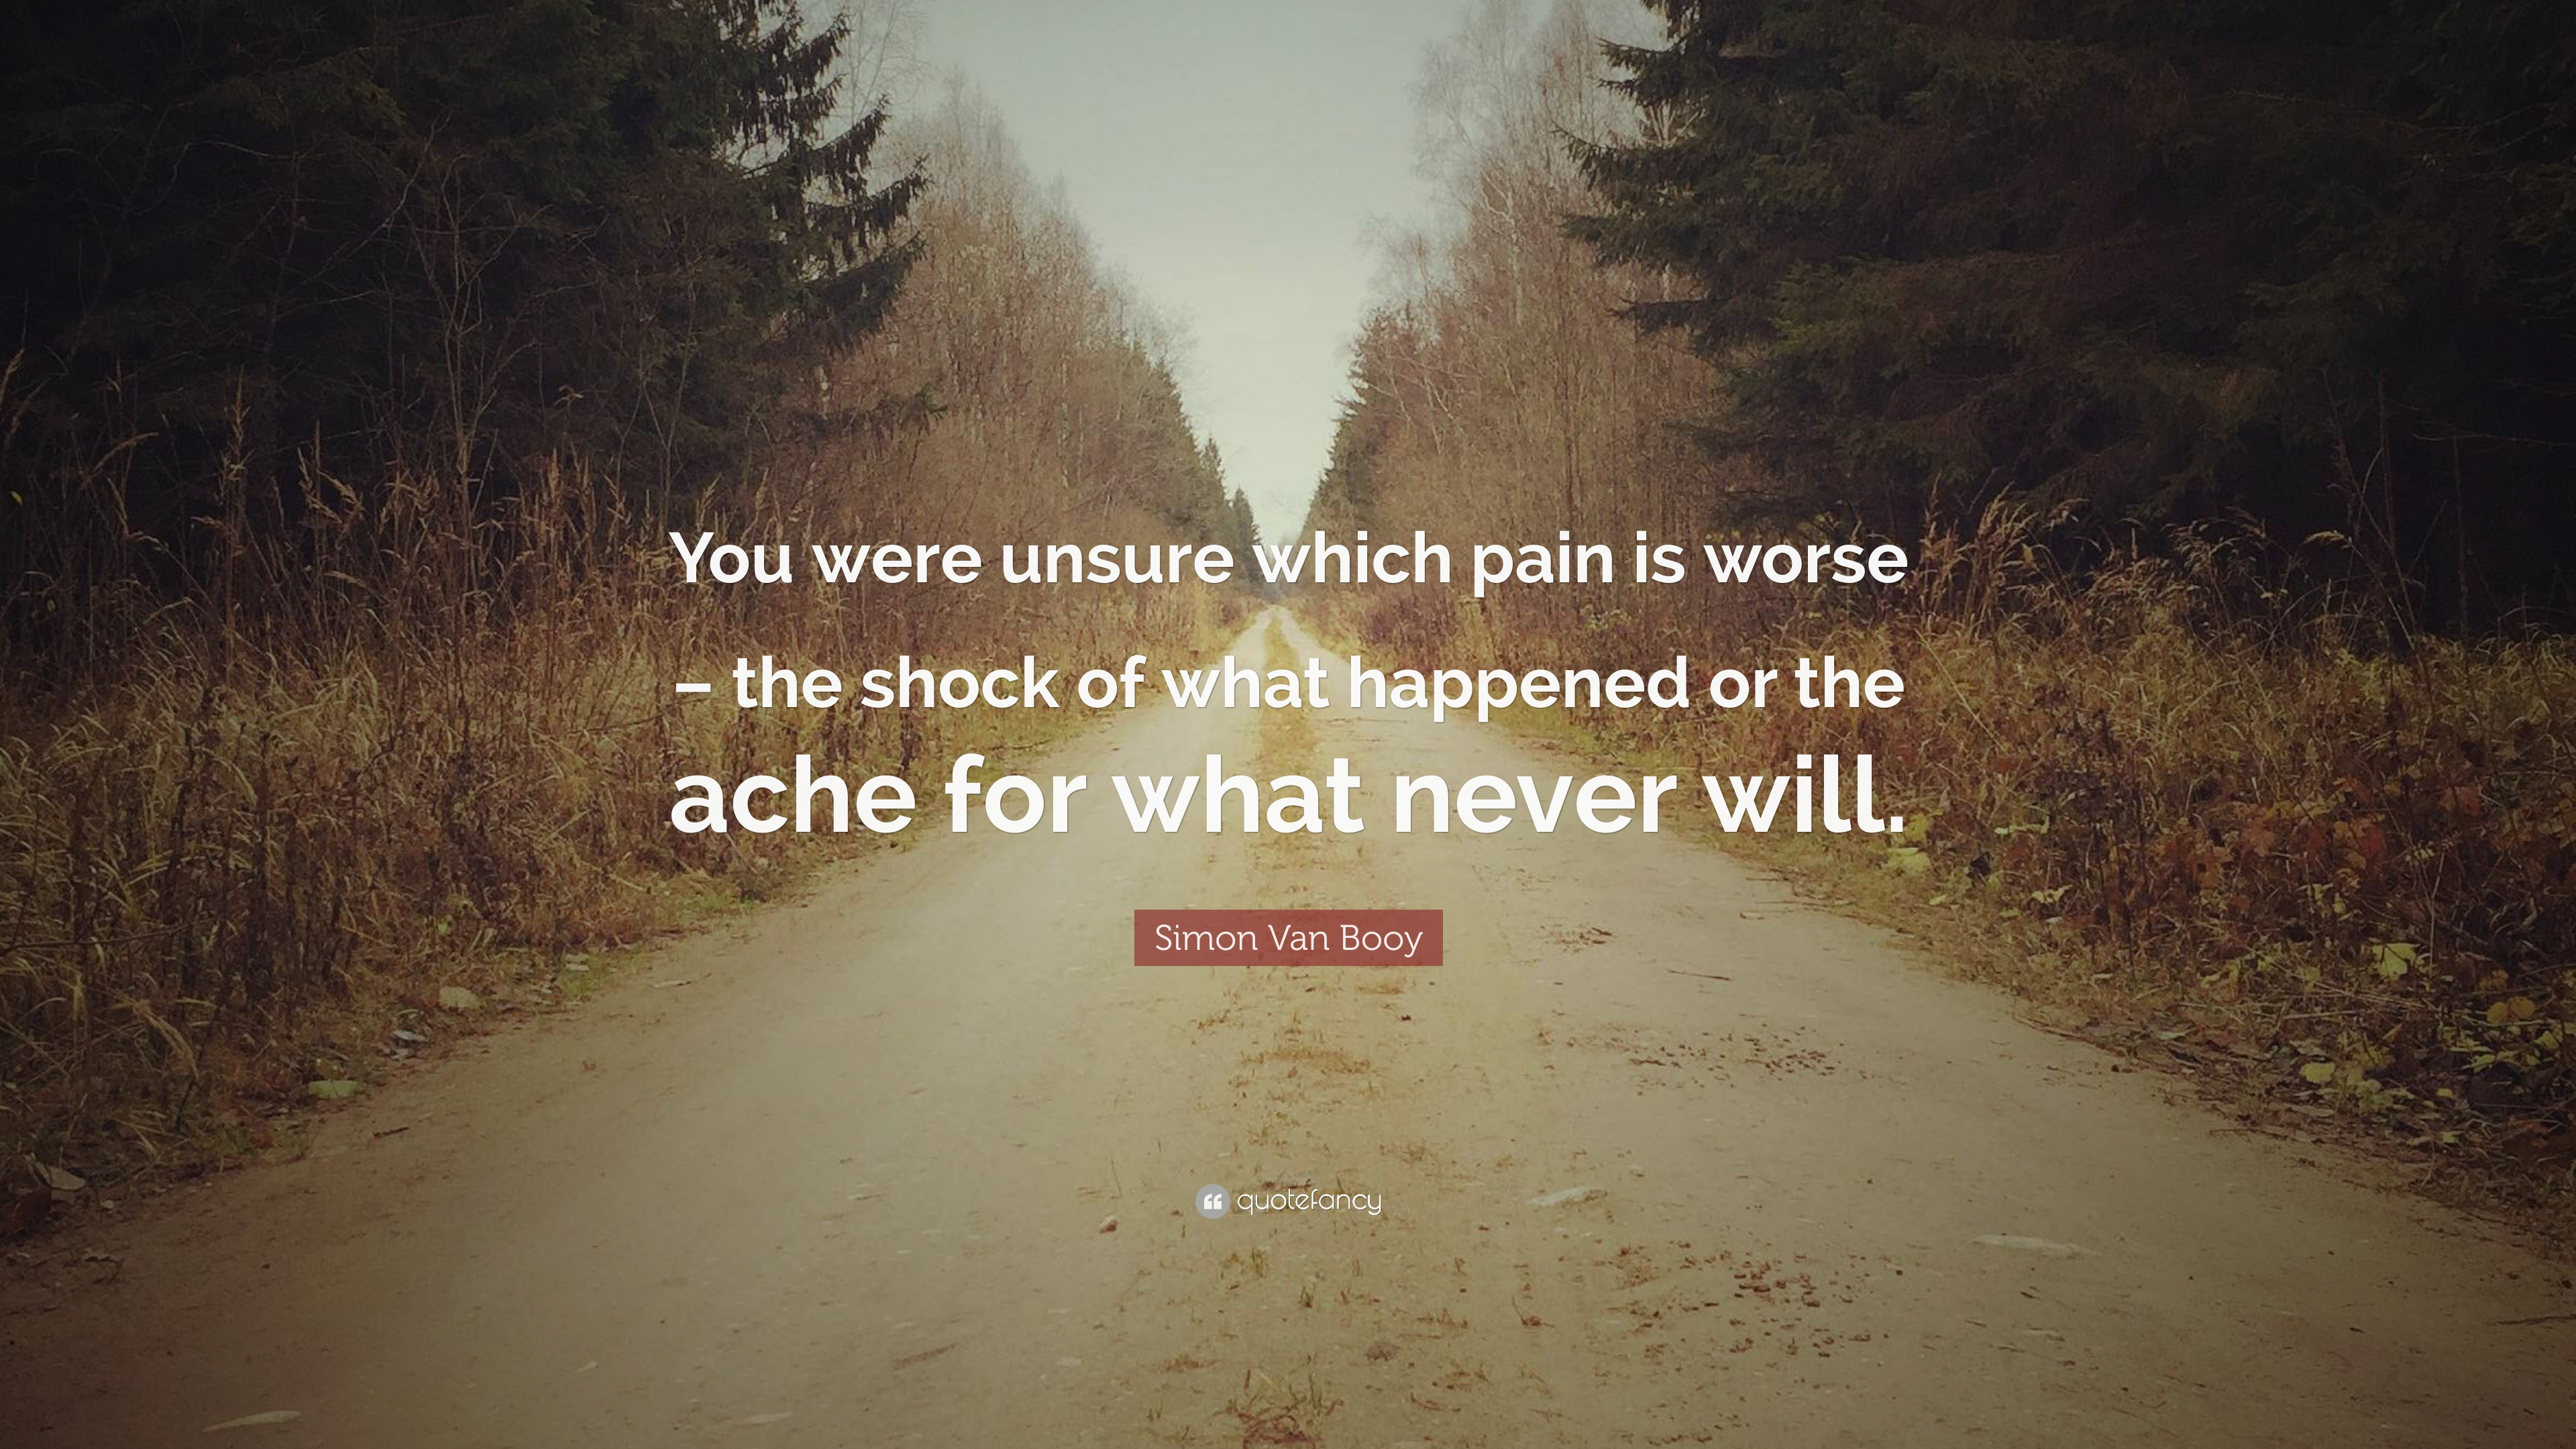 Simon Van Booy Quote You Were Unsure Which Pain Is Worse border=